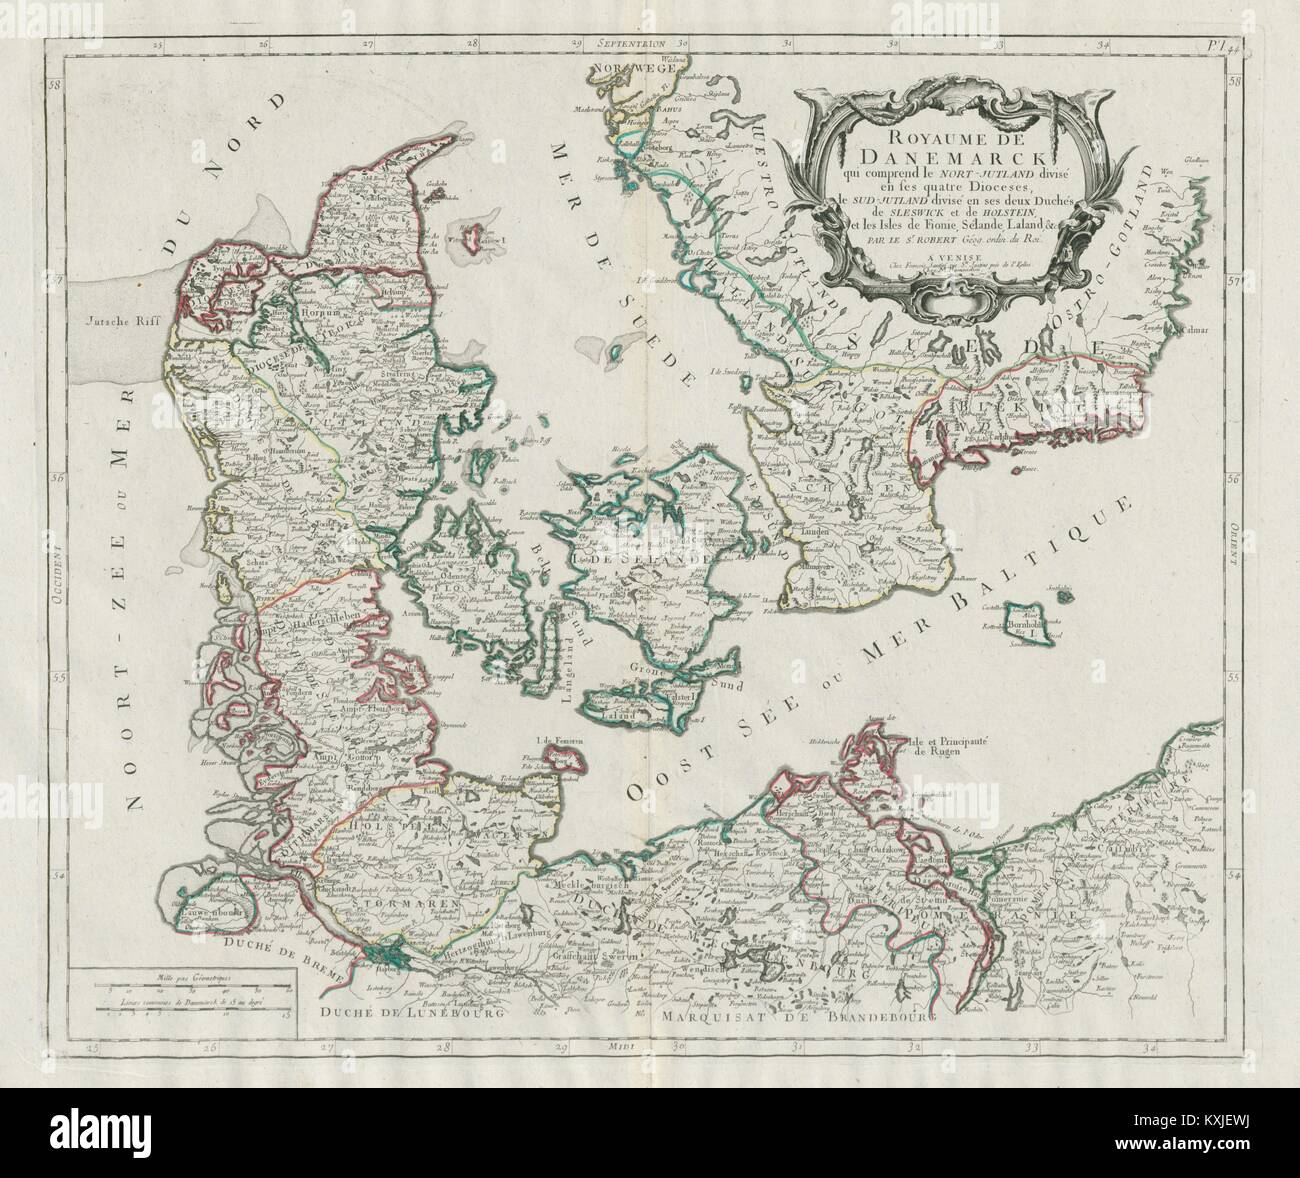 Denmark and sweden stock photos denmark and sweden stock images denmark sweden santini vaugondy 1784 old map gumiabroncs Choice Image